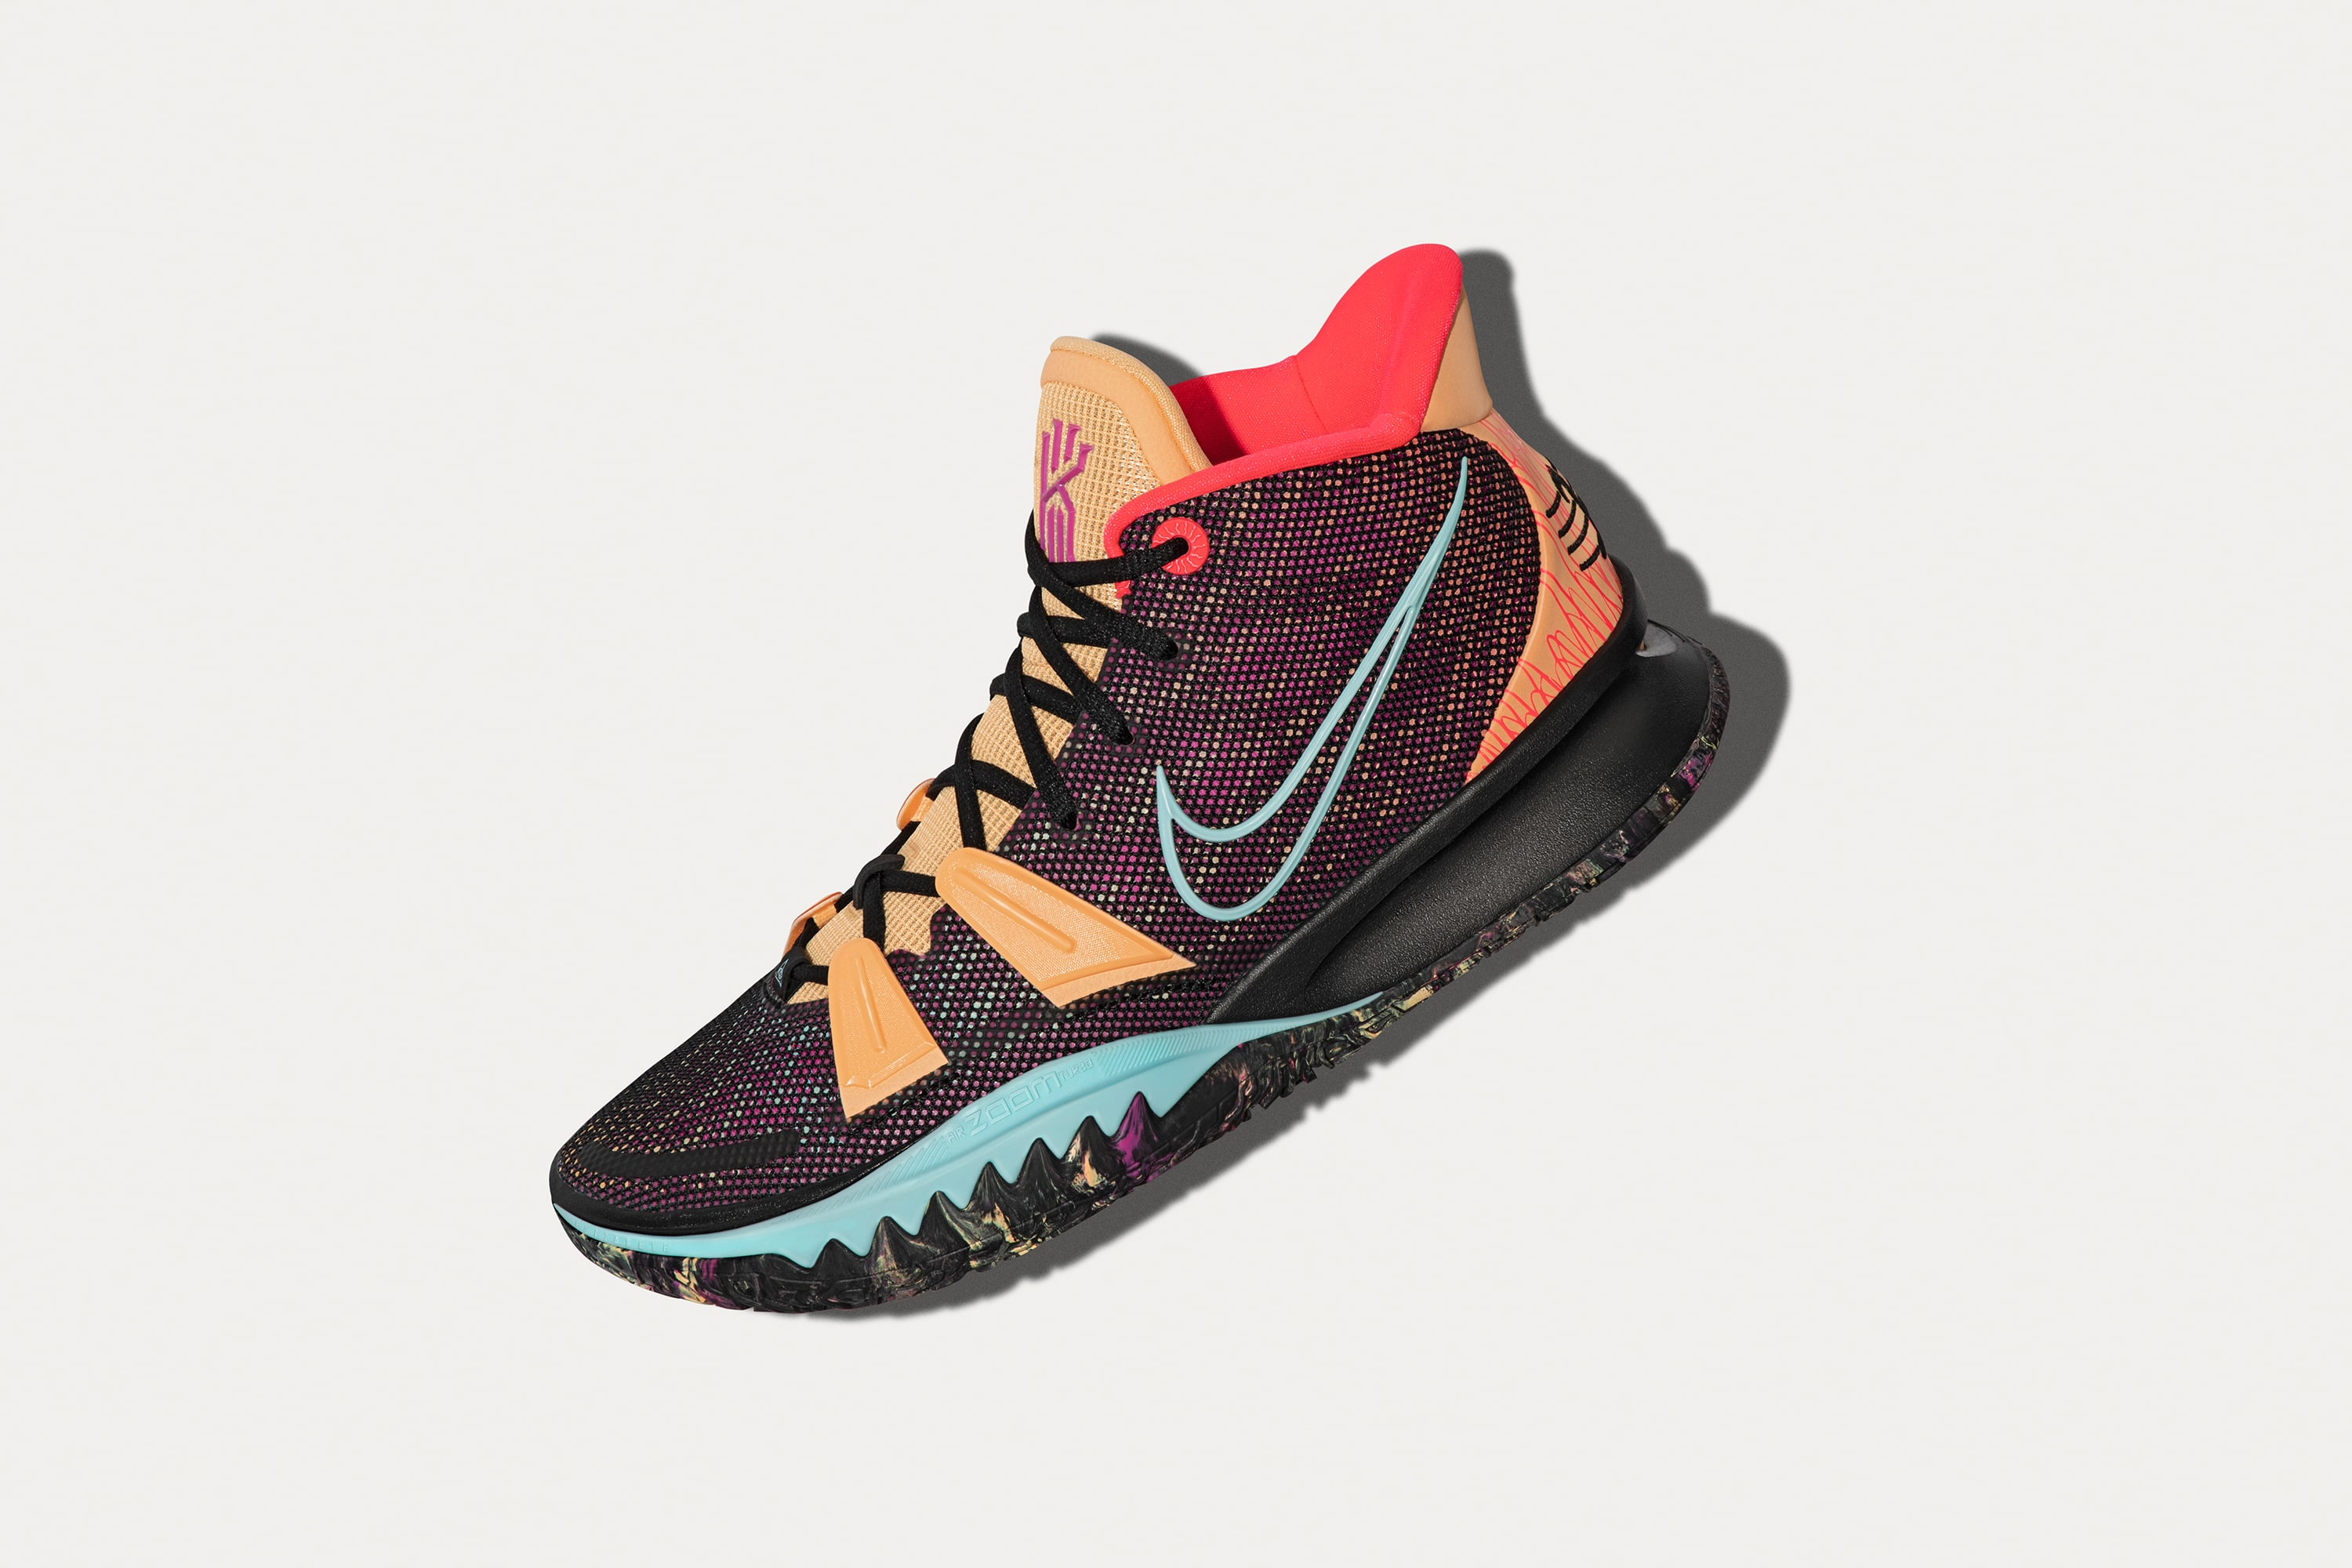 Nike Kyrie 7 Preheat 'Soundwave' Lateral